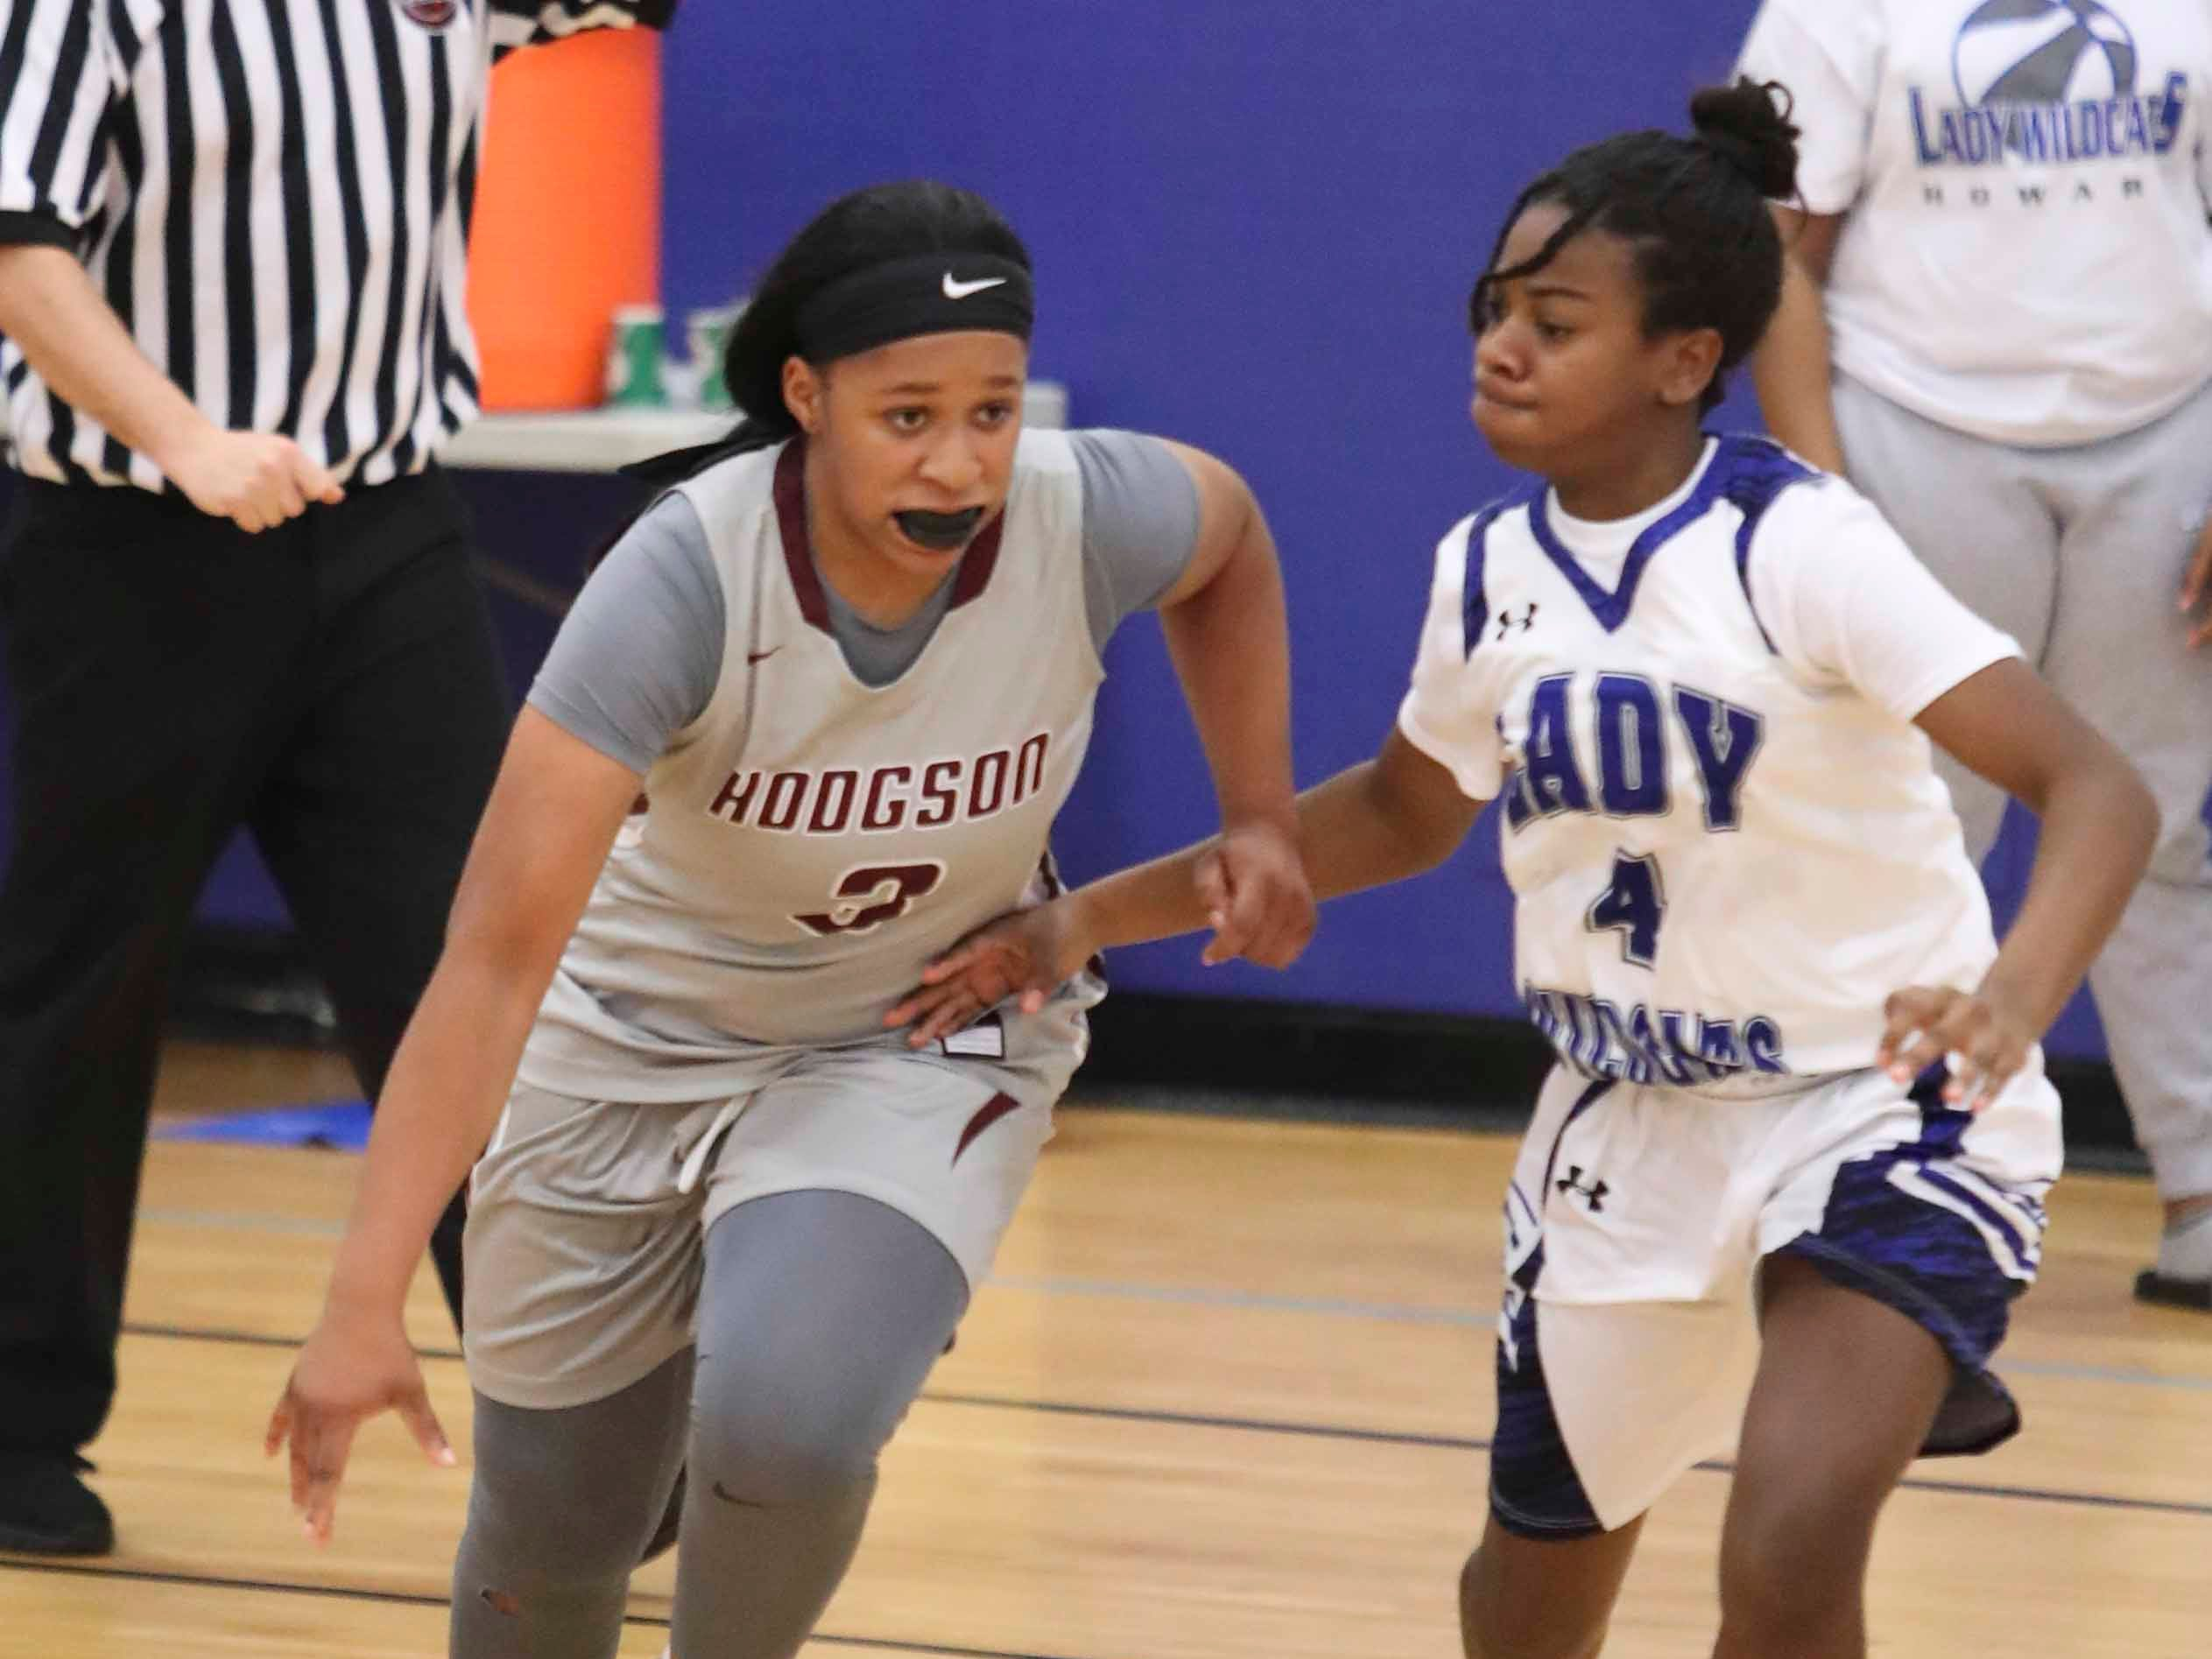 Hodgson's Kayla Braxton-Young (left) moves against Howard's Makayla Ellerbe in Hodgson's 50-47 win at Howard Tuesday. The Silver Eagles pulled away in the final minutes of a tied game and survived a final Howard possession to win.